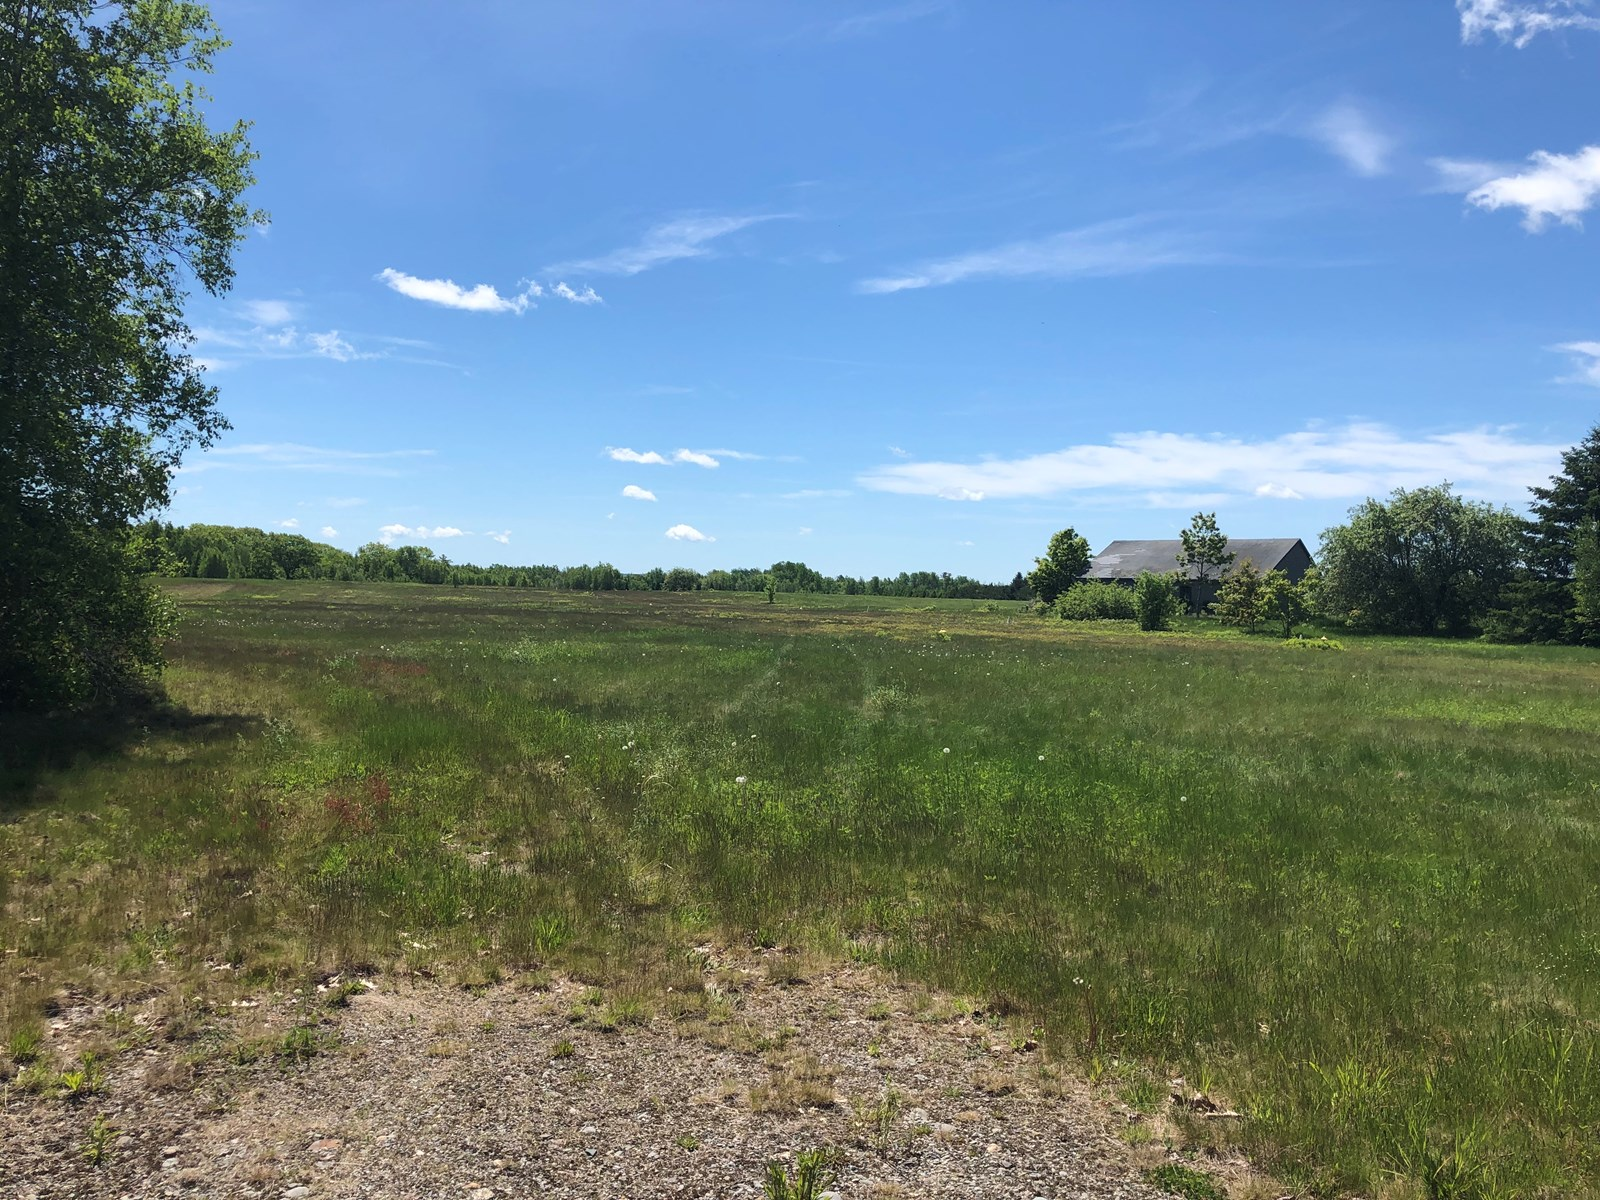 Airstrip & Hanger Property for Sale in Maine